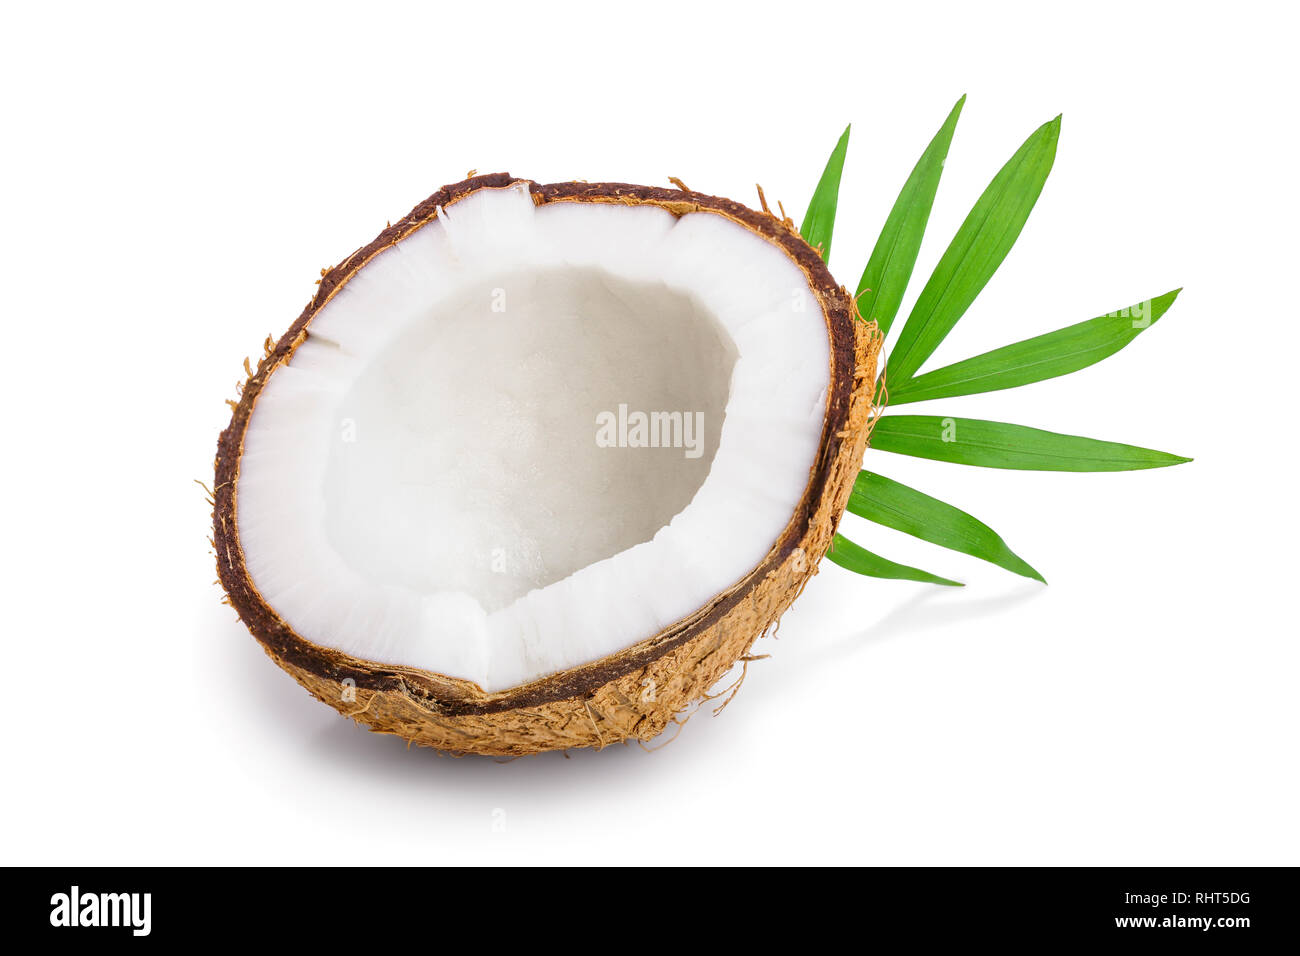 half of coconut with leaves isolated on white background - Stock Image